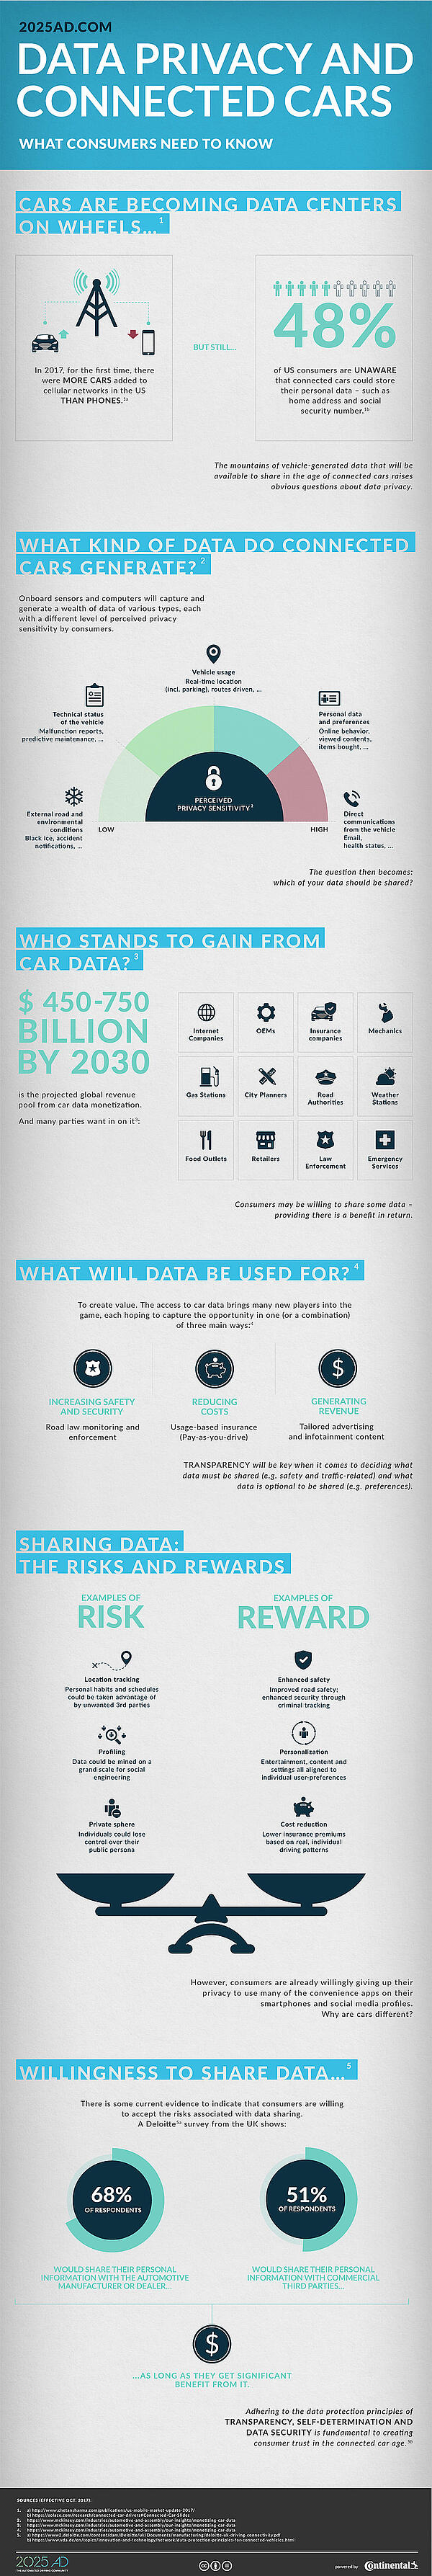 INFOGRAPHIC DATA PRIVACY AND CONNECTED CARS 2